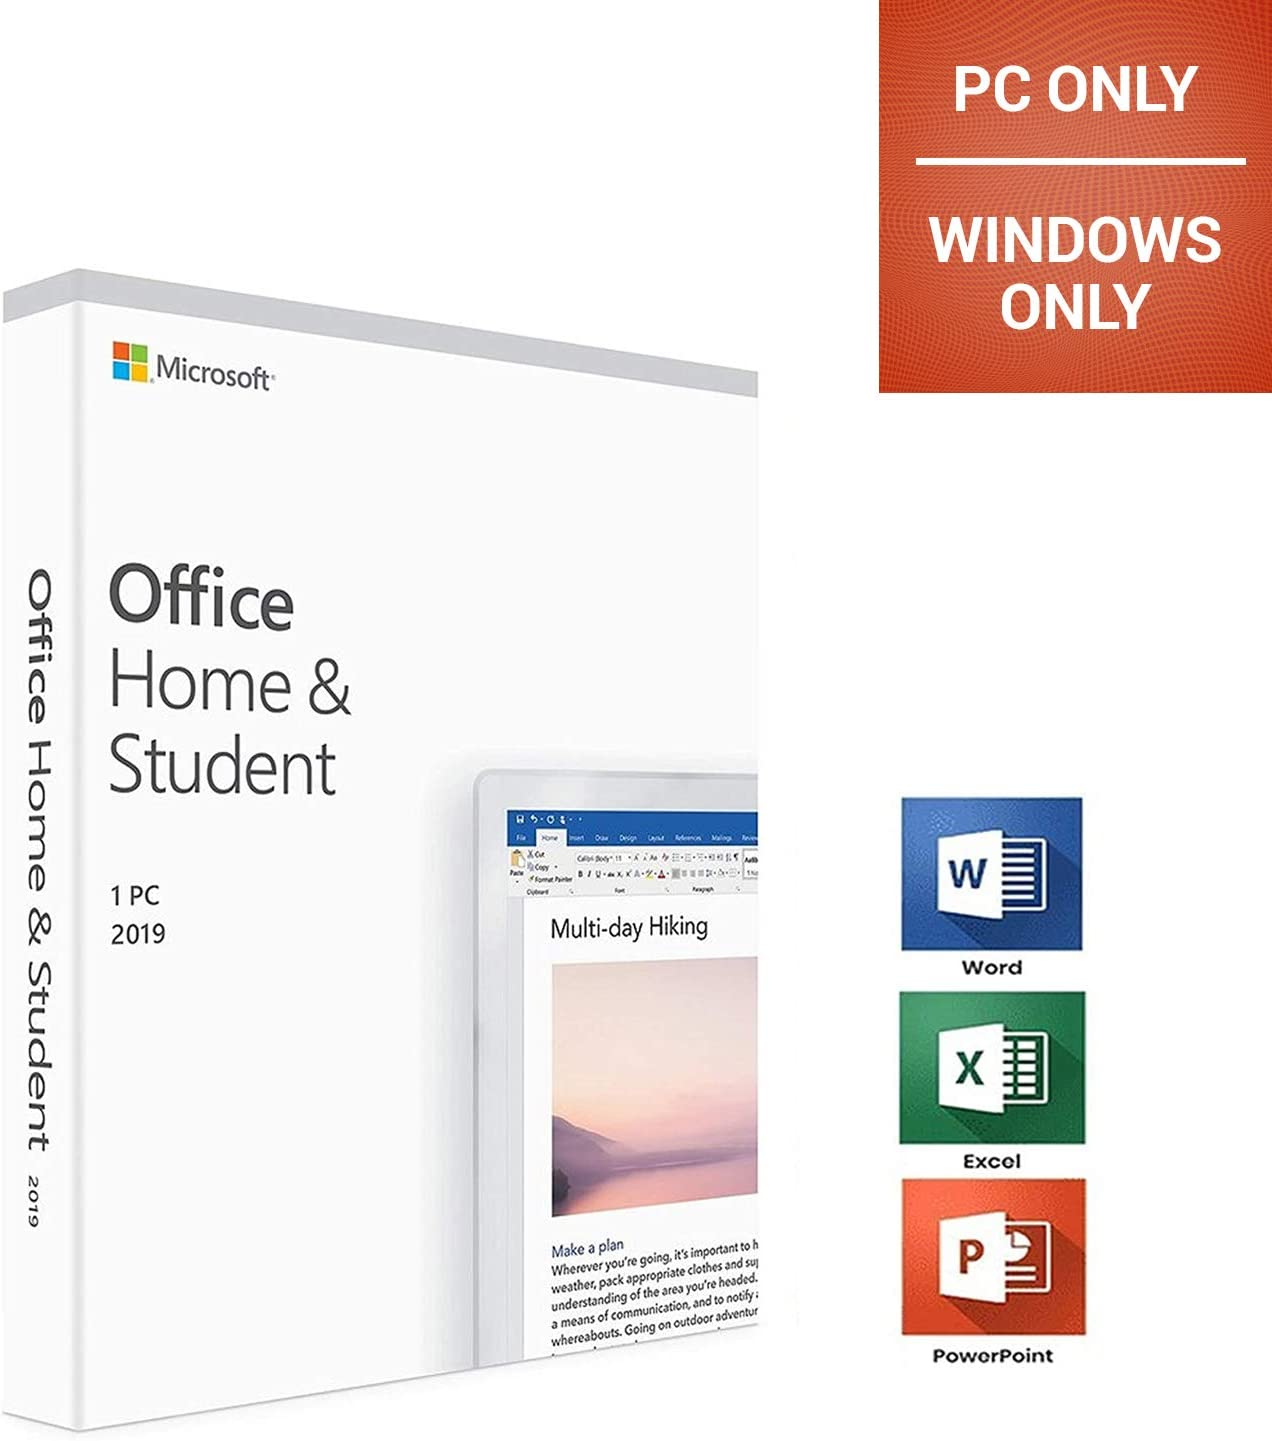 Office Home and Student 2019 | For PC | Not for MacOS | - Office 2019 Home & Student | Only Windоws (not for macOS) | Lifetime License